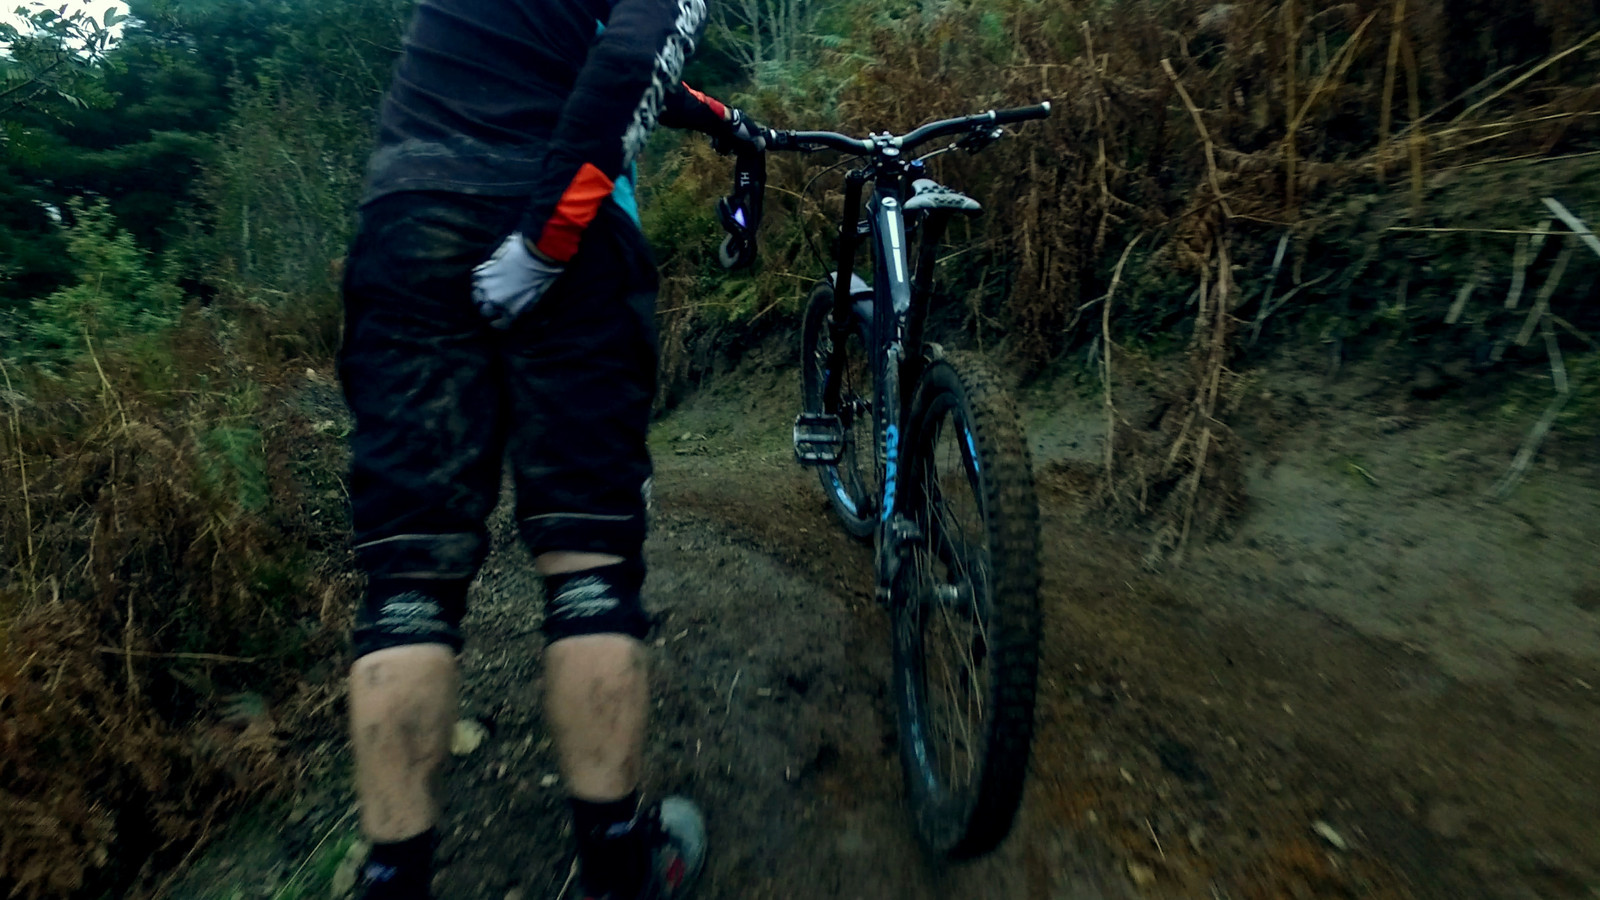 MILKY - Matthew Davies - Mountain Biking Pictures - Vital MTB